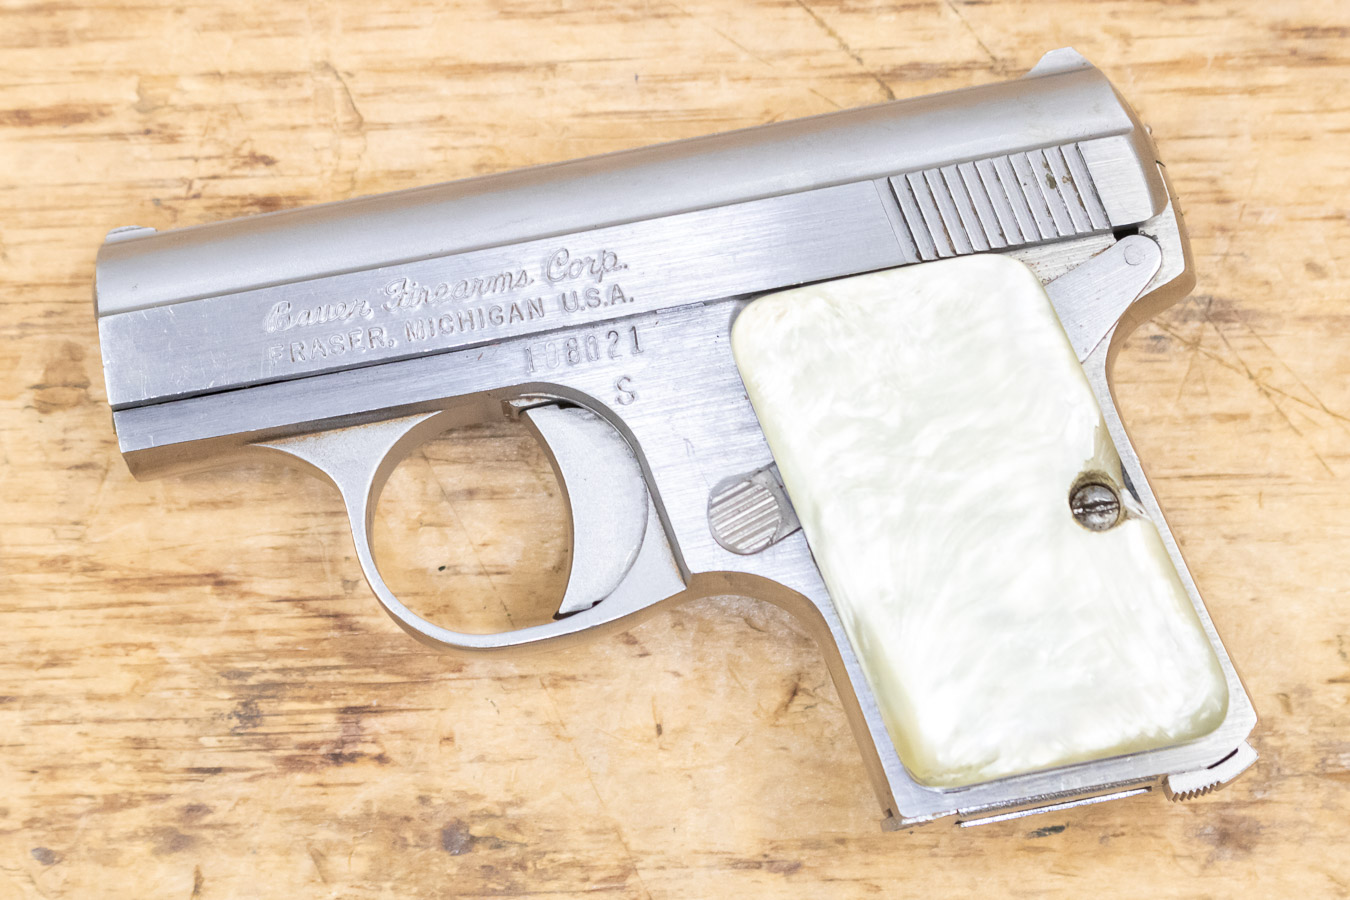 25 ACP Used Trade-in Pistol with Mother of Pearl Grips